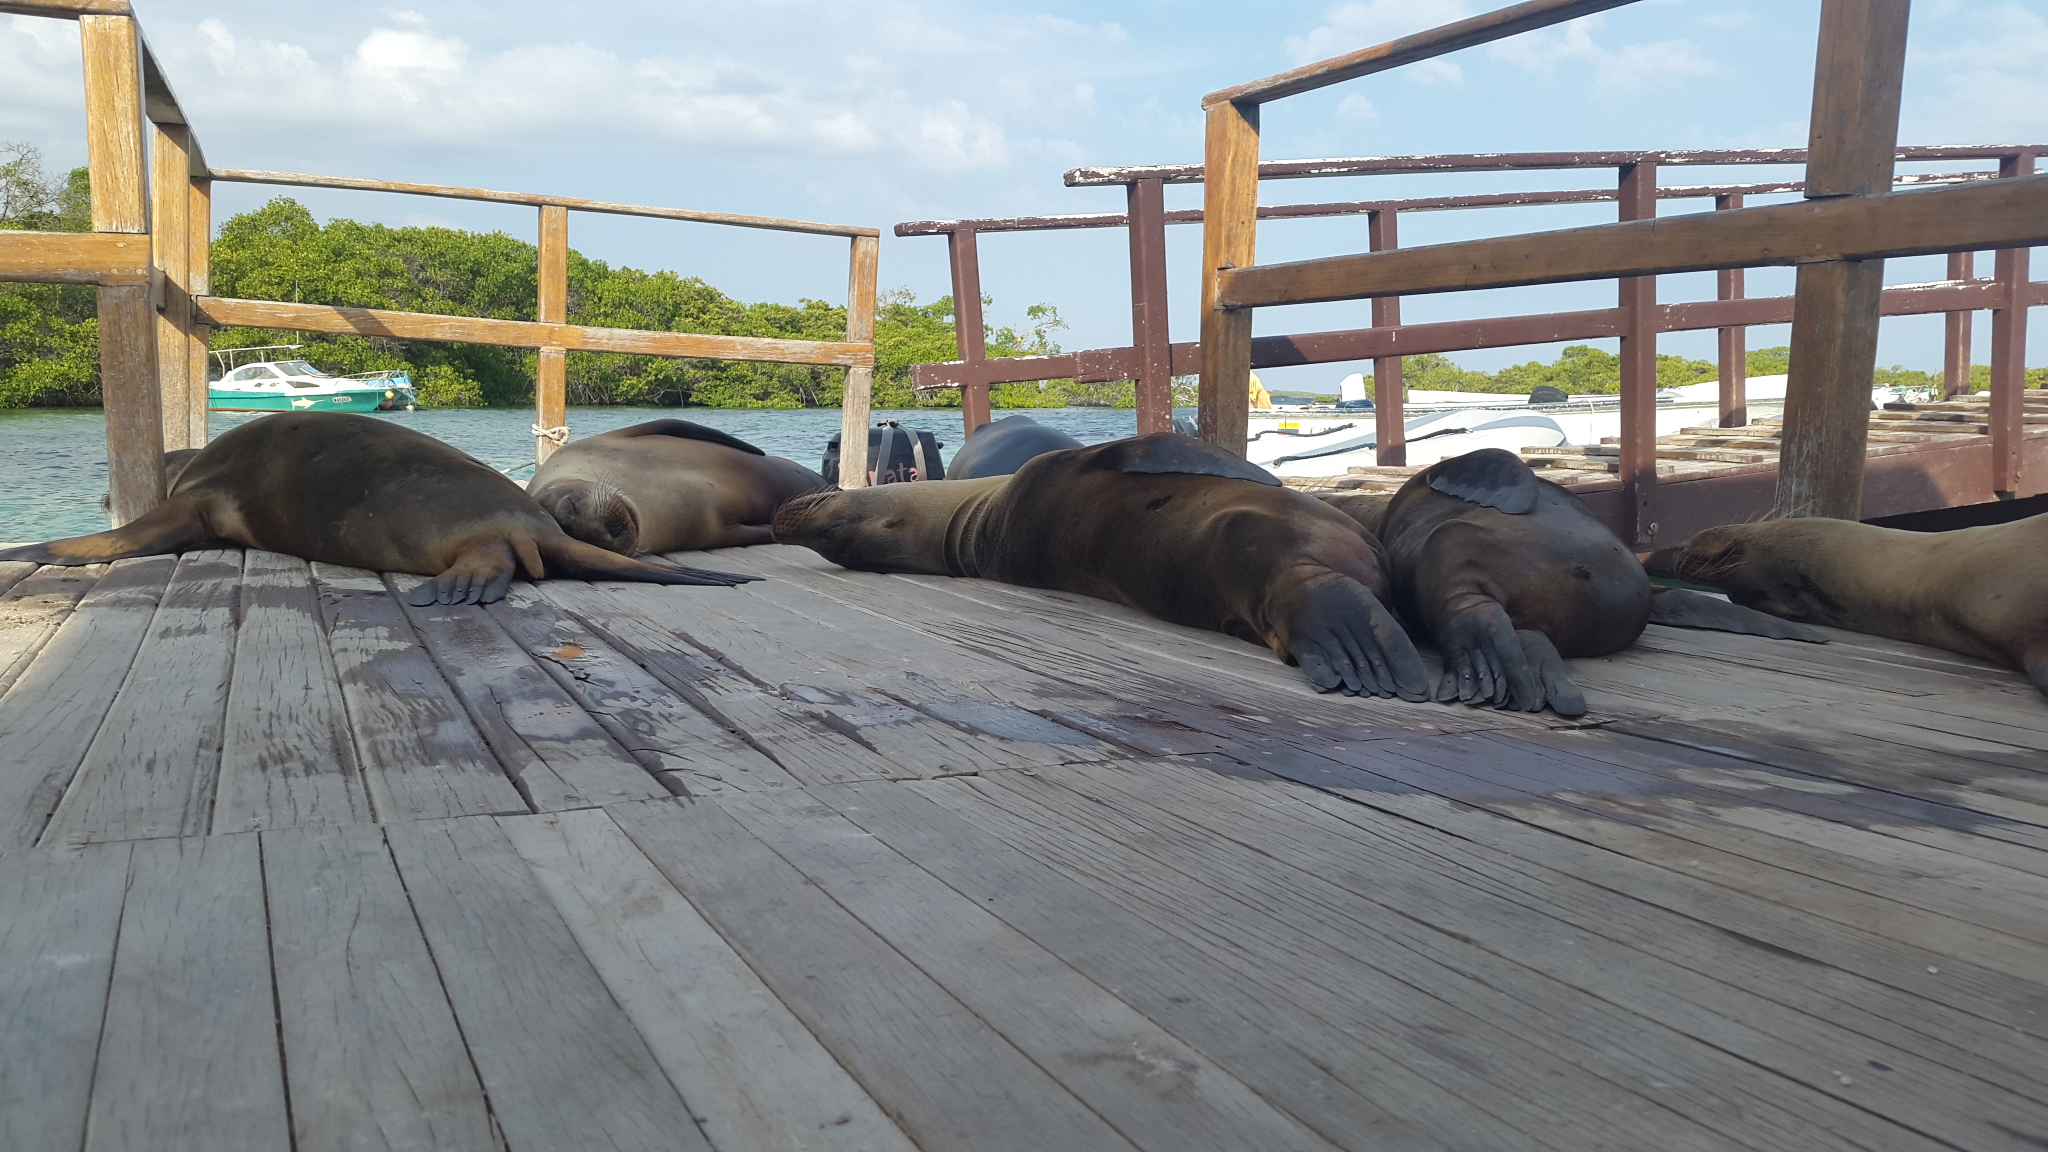 When the sea lions weren't playfully chasing fish around the anchor chain, curiously investigating the bubbles from our snorkels, or racing around the harbor like swallows darting around the sky, they were busy suffering from the worst hangovers in history. They'd pass out wherever they felt like it – park benches, dinghy dock, strangers' cockpits – and make themselves at home. Usually this involved belching, puking, moaning, and biting at anything that came too close to their faces. (Clearly they've never heard of Pedialyte.)